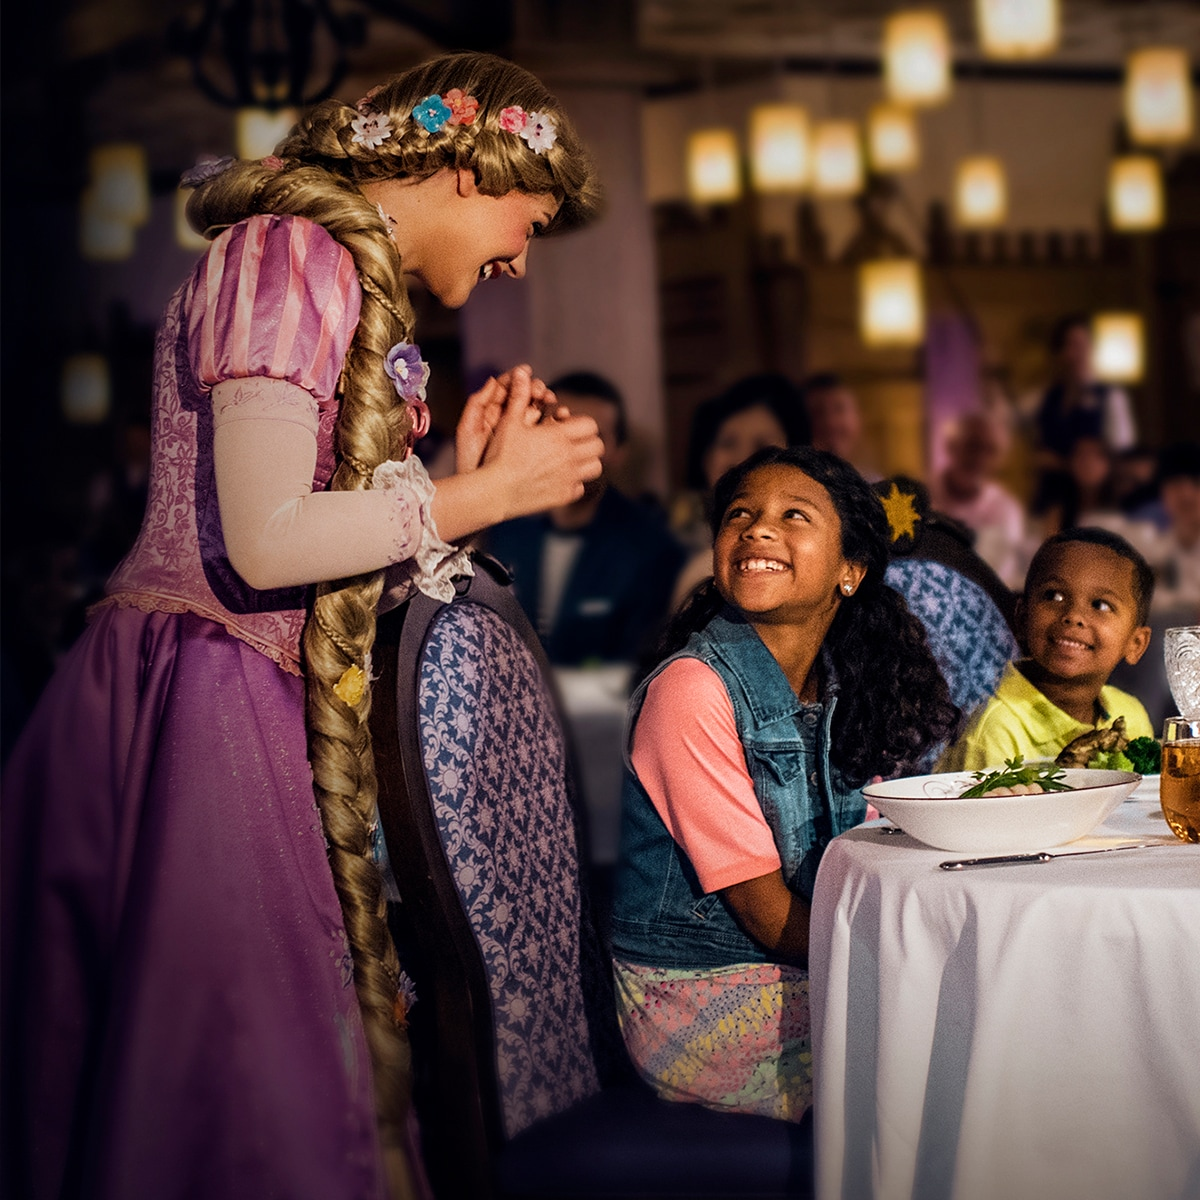 Rapunzel greeting a family who are eating dinner